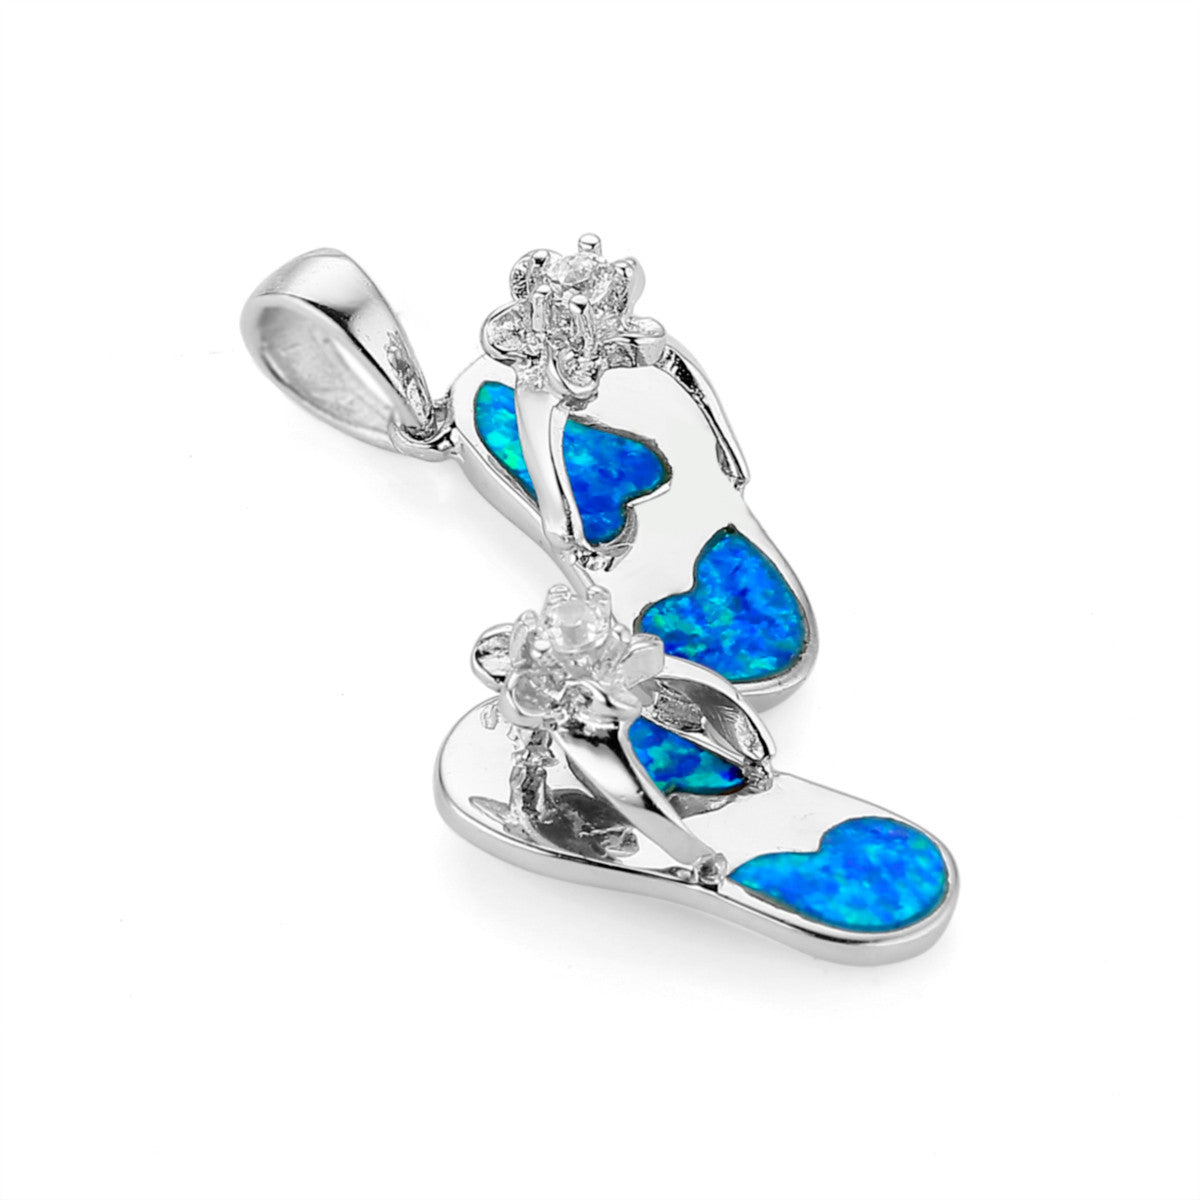 pendant jewelry sterling silver vintage leah round junxin blue fire white zircon drop crystal water filled new products opal necklace laura